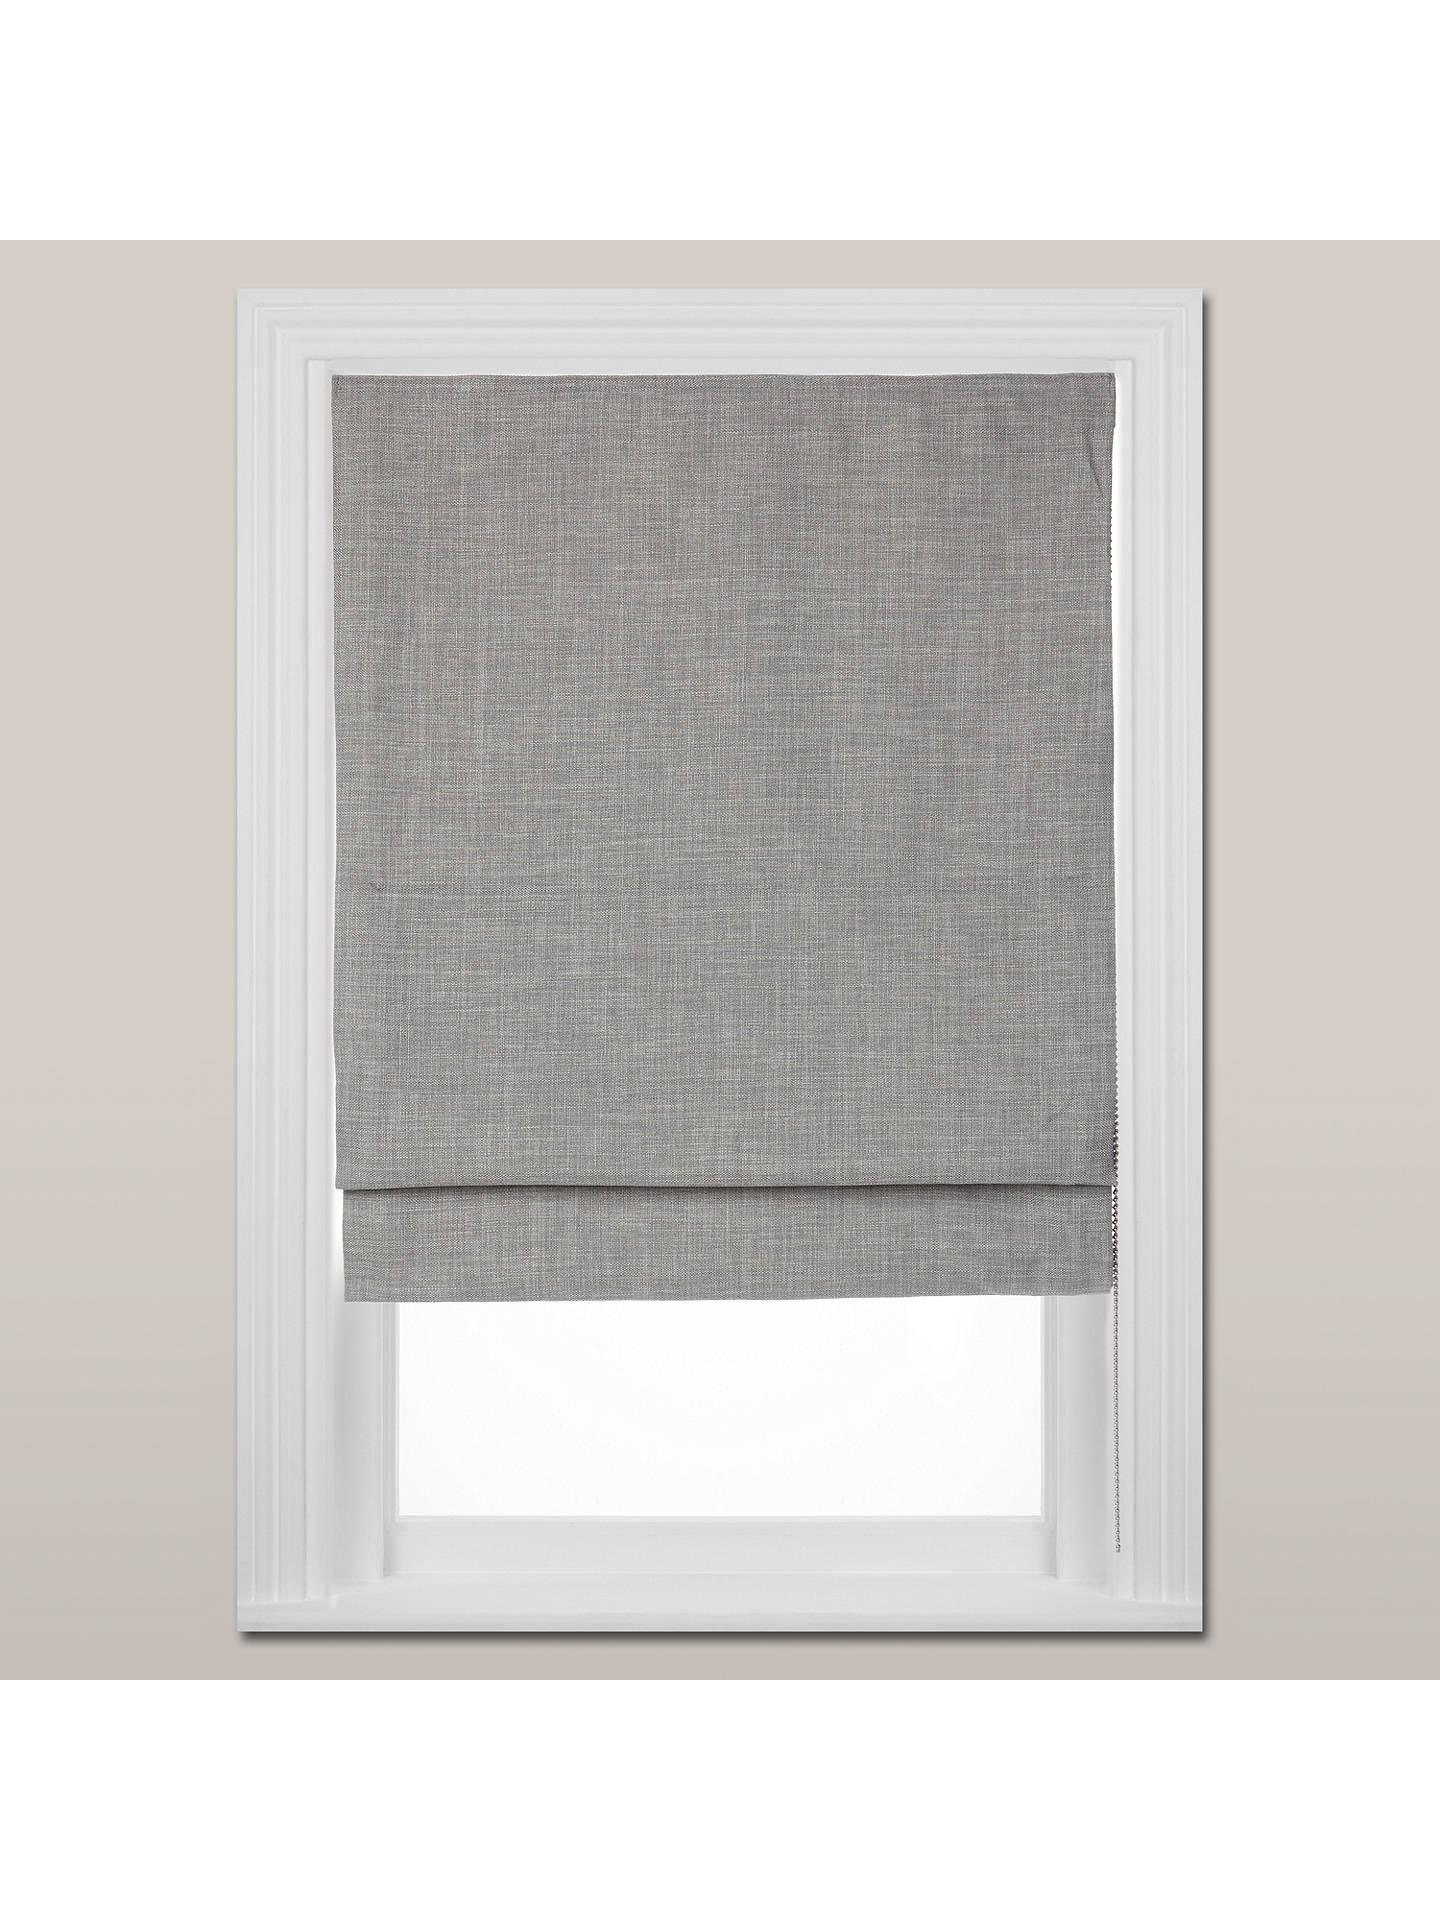 BuyCroft Collection Shawford Blackout Roman Blind, Storm, W60cm Online at johnlewis.com